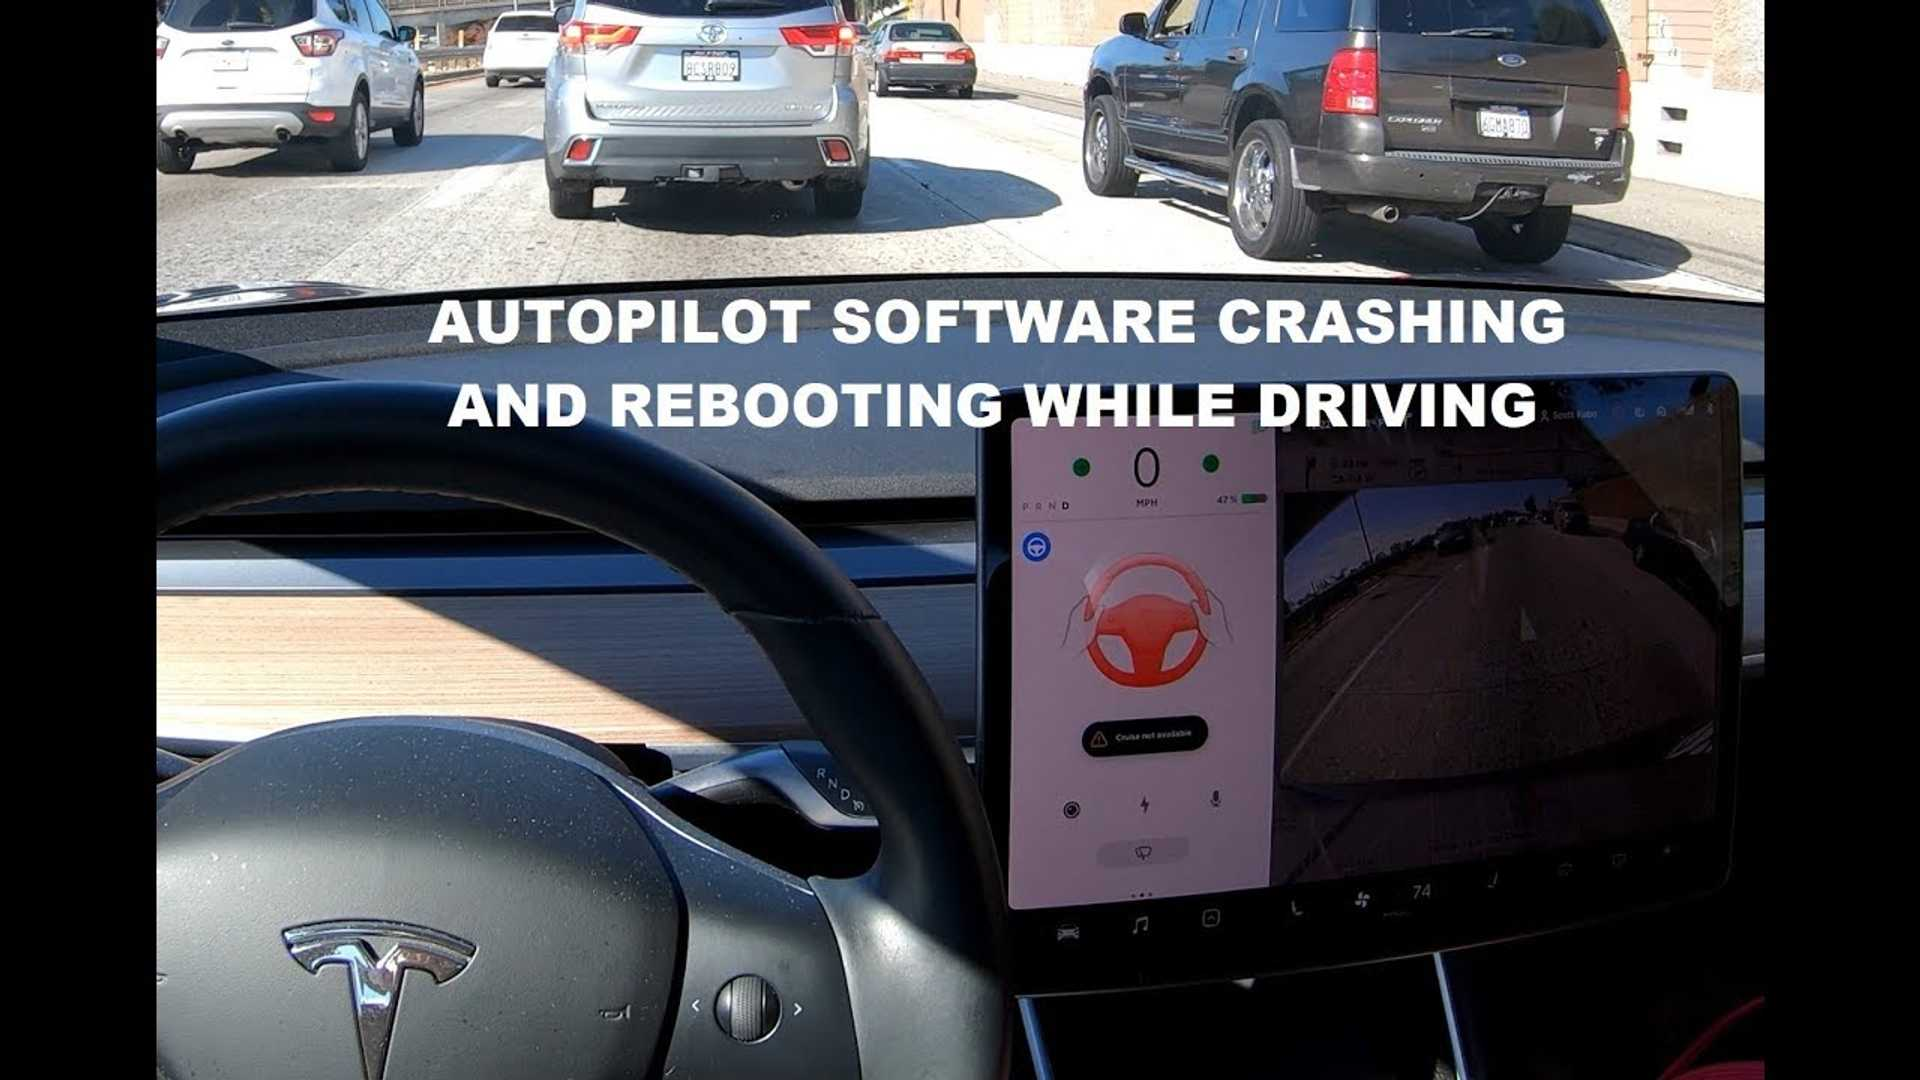 Tesla Autopilot Software Crash While Driving: What You Need To Know